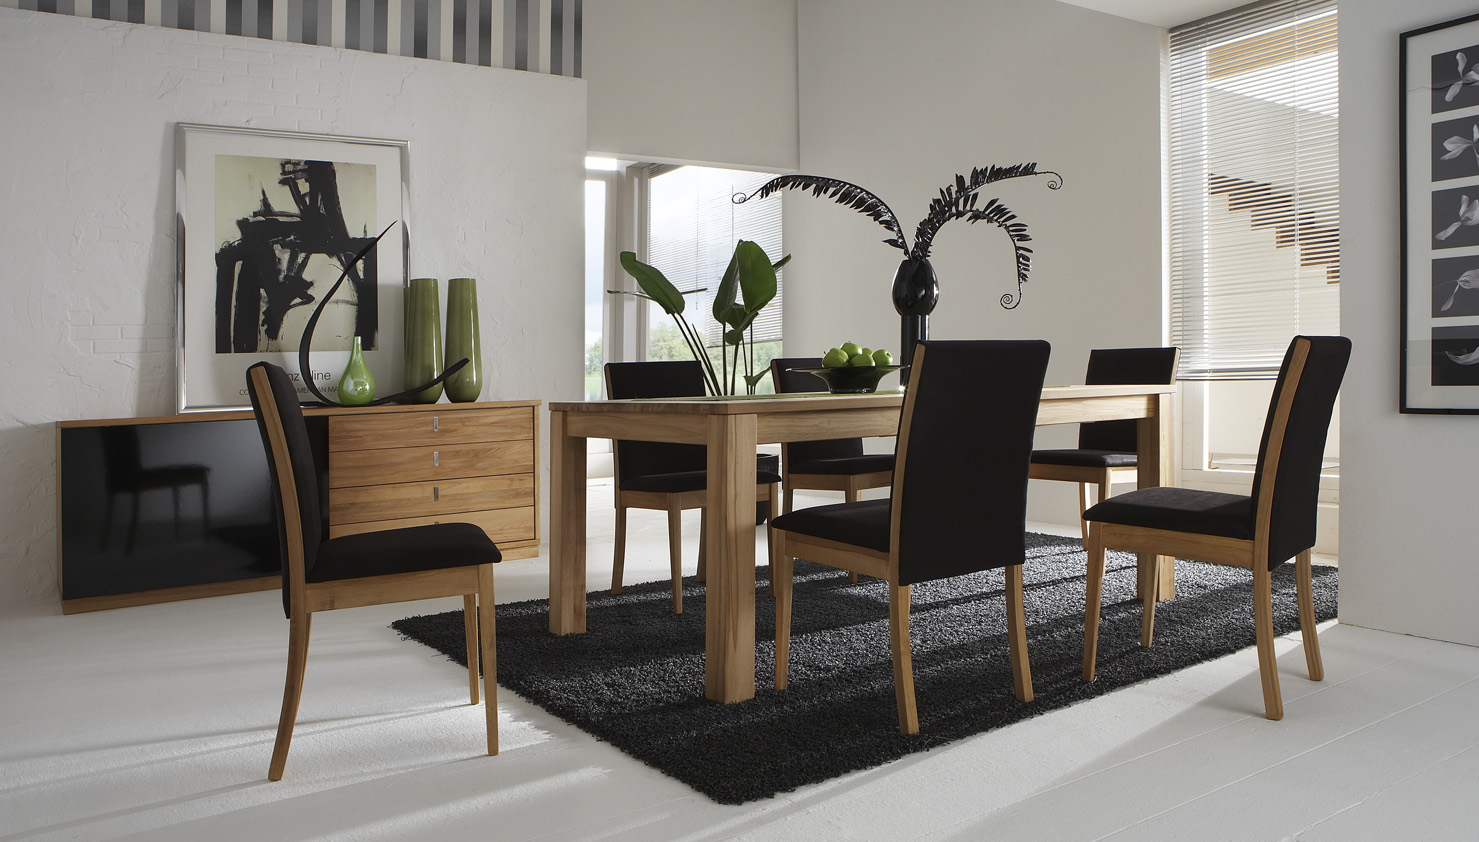 Fashion-furniture-design-for-equipment-of-modish-dining-room-black-chairs-with-wooden-foots-wooden-dining-table-cabinet-vases-and-carpet